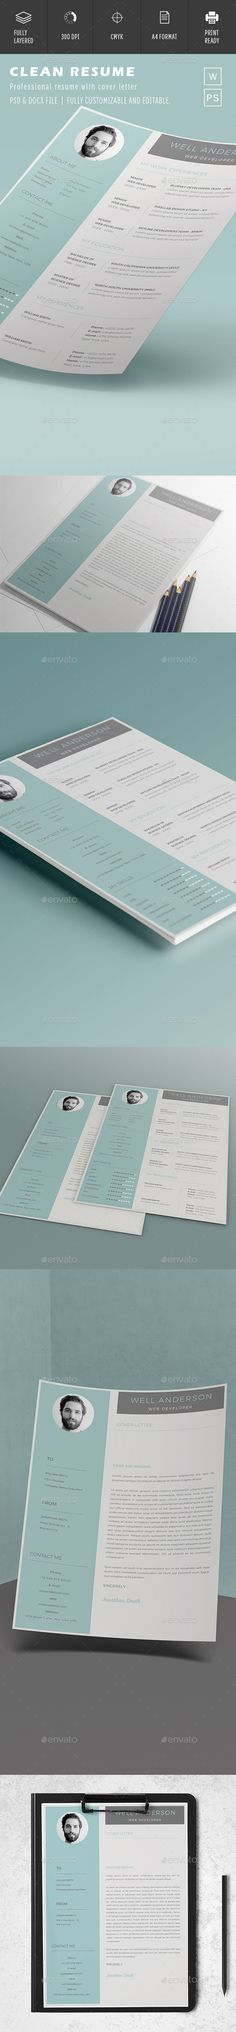 524 best Resume templates images on Pinterest | Layout design, Page ...